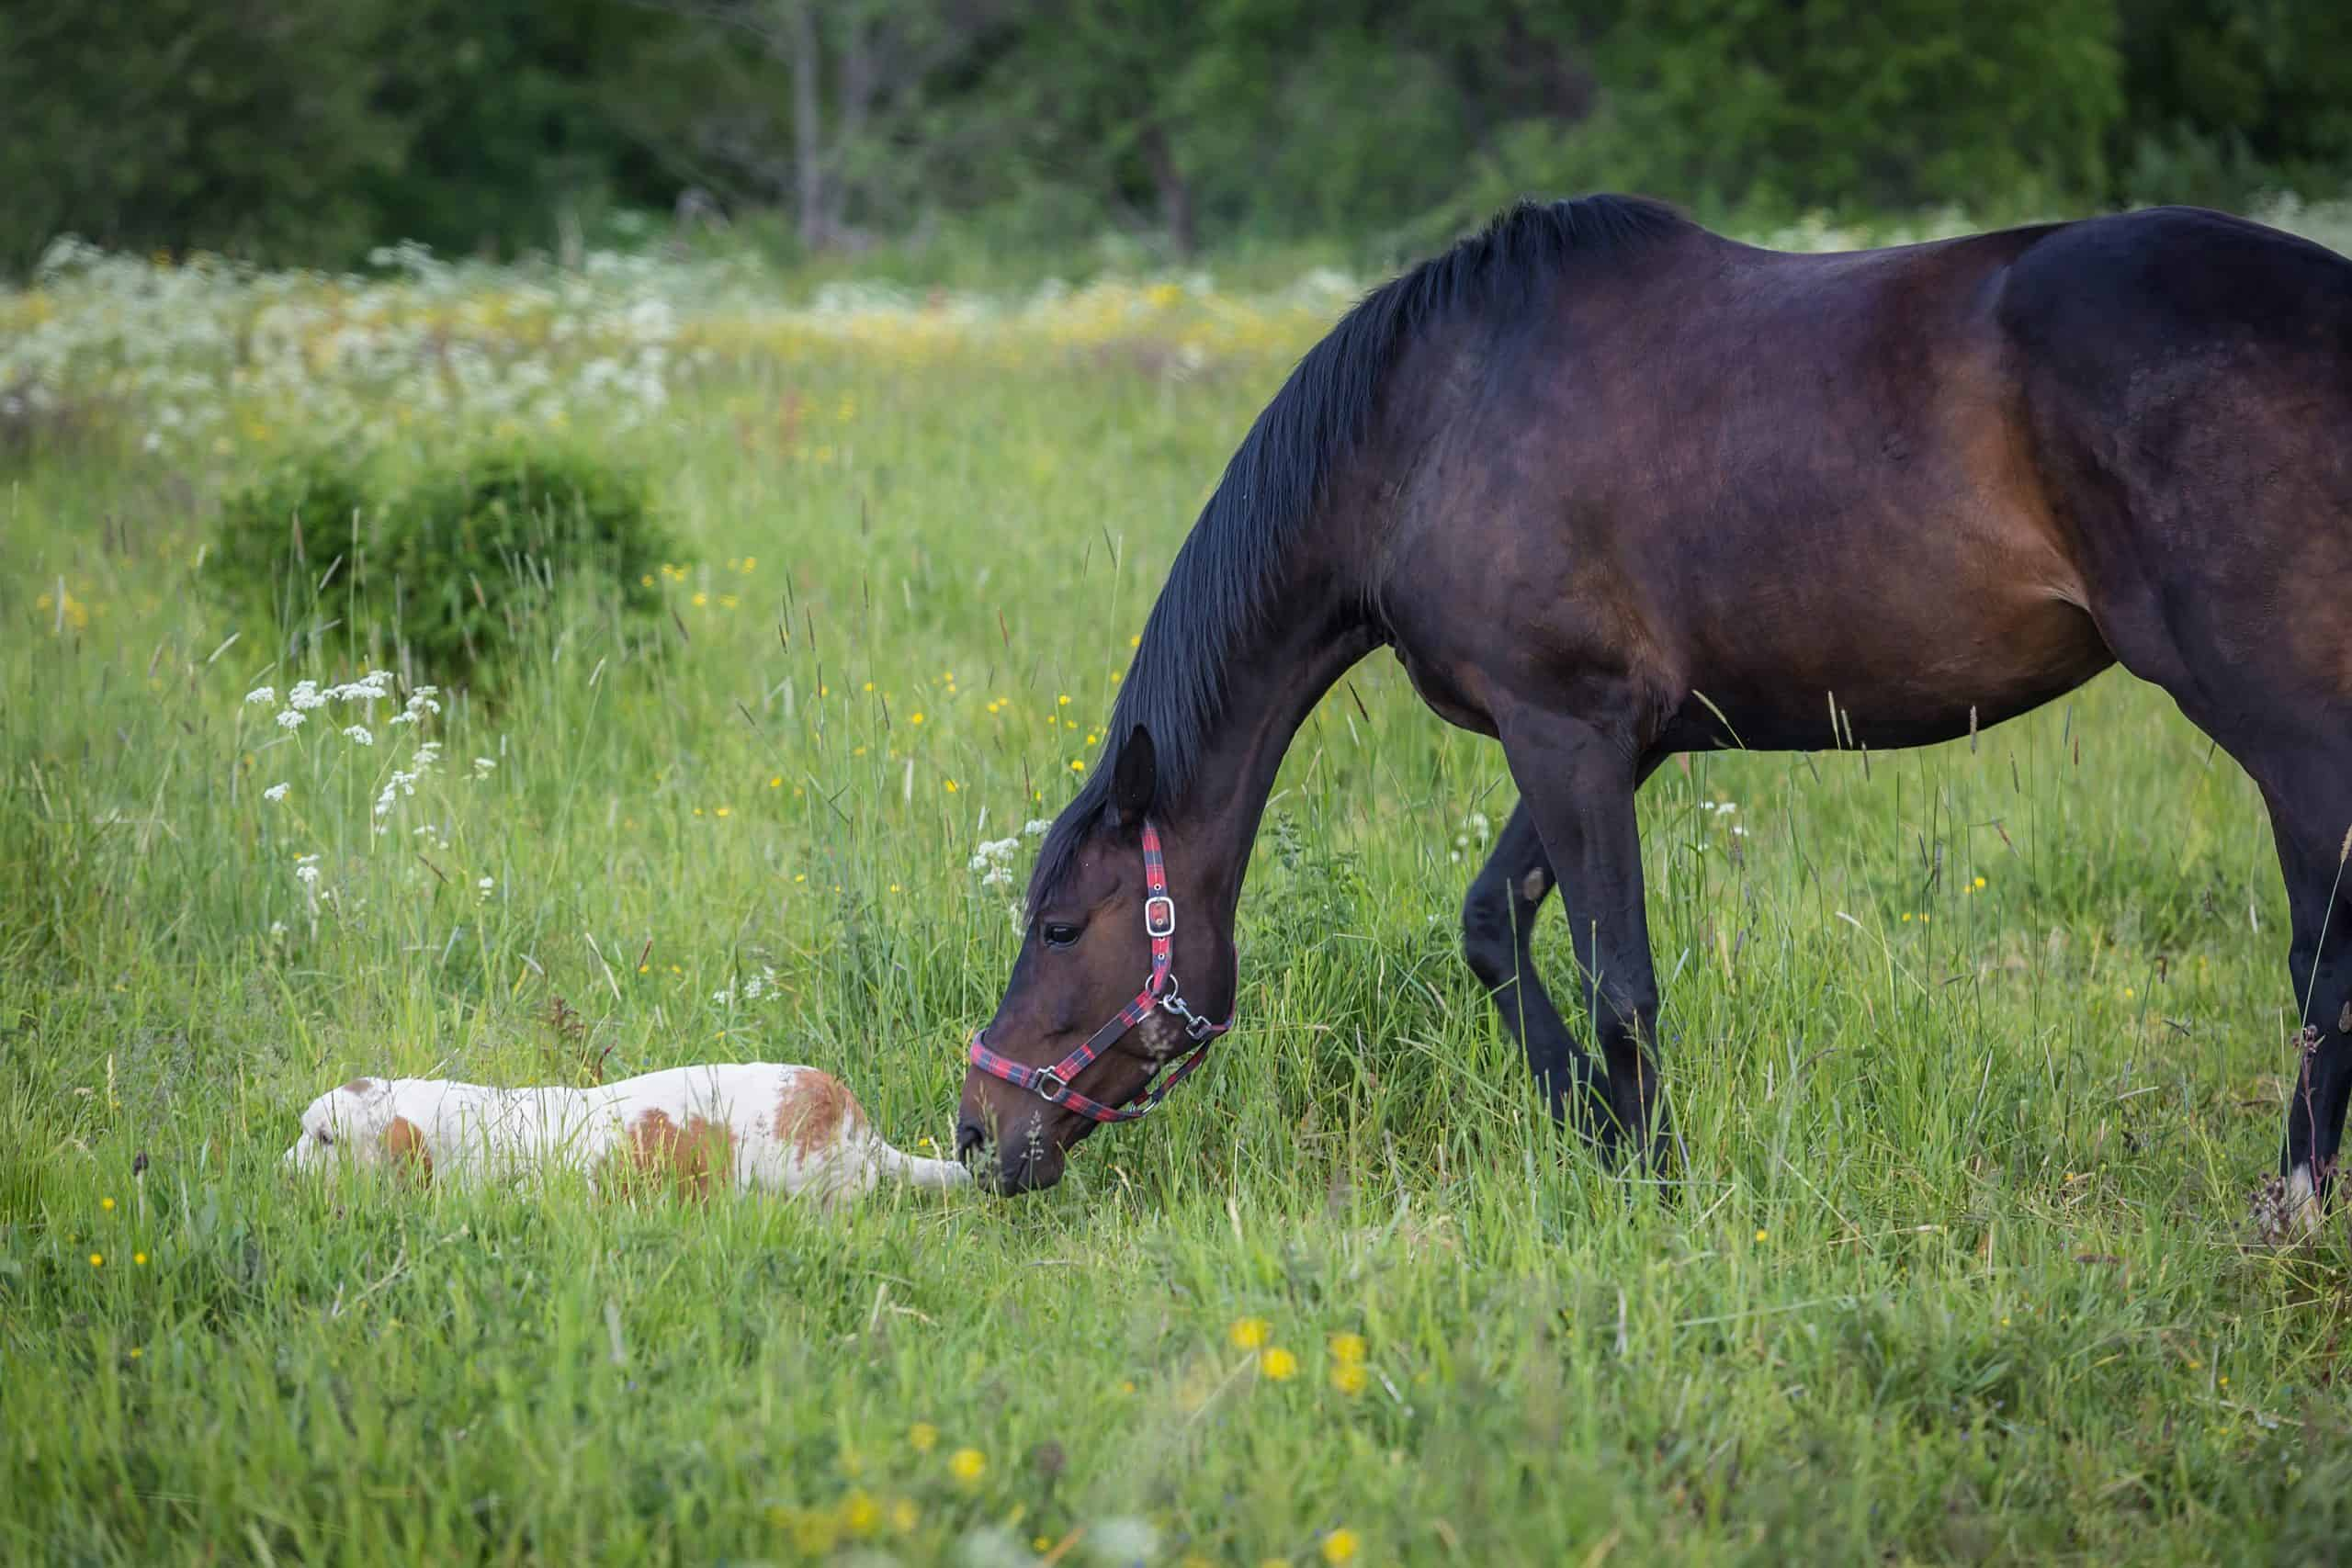 A horse and a bassethound dog outdoors